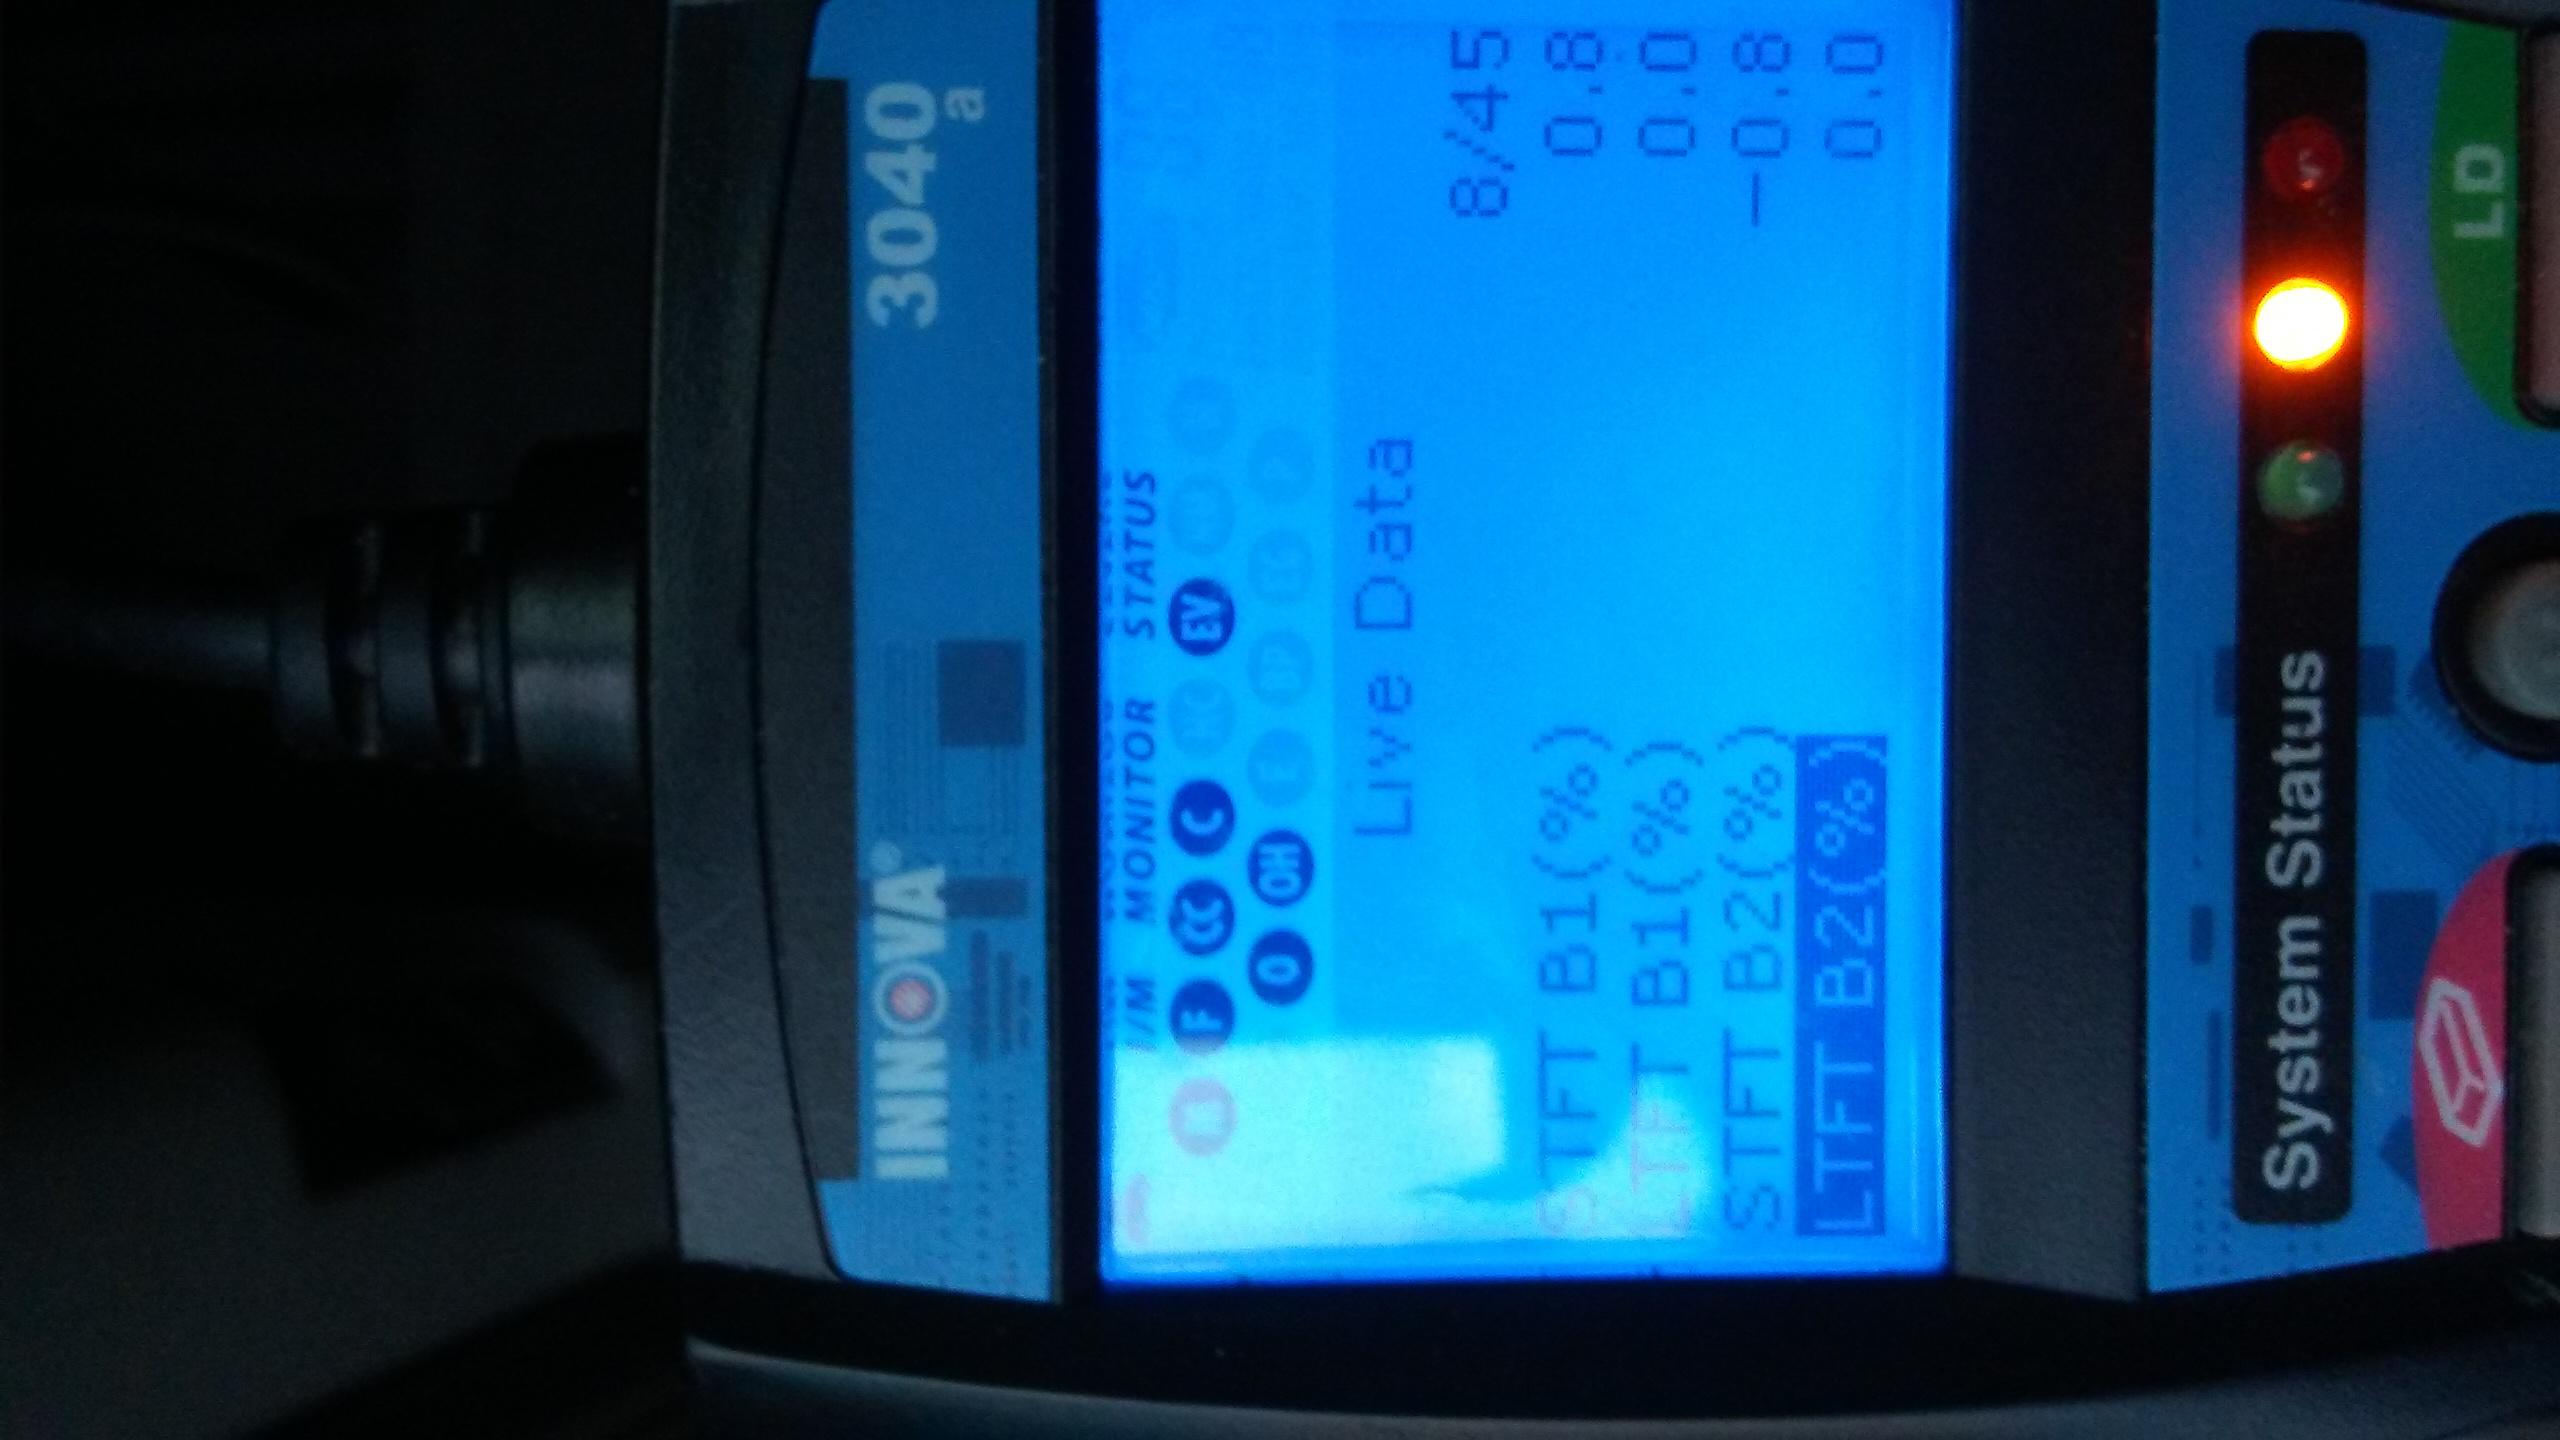 No Acceleration, Rough Idle, Poor Pedal Response, Lack of